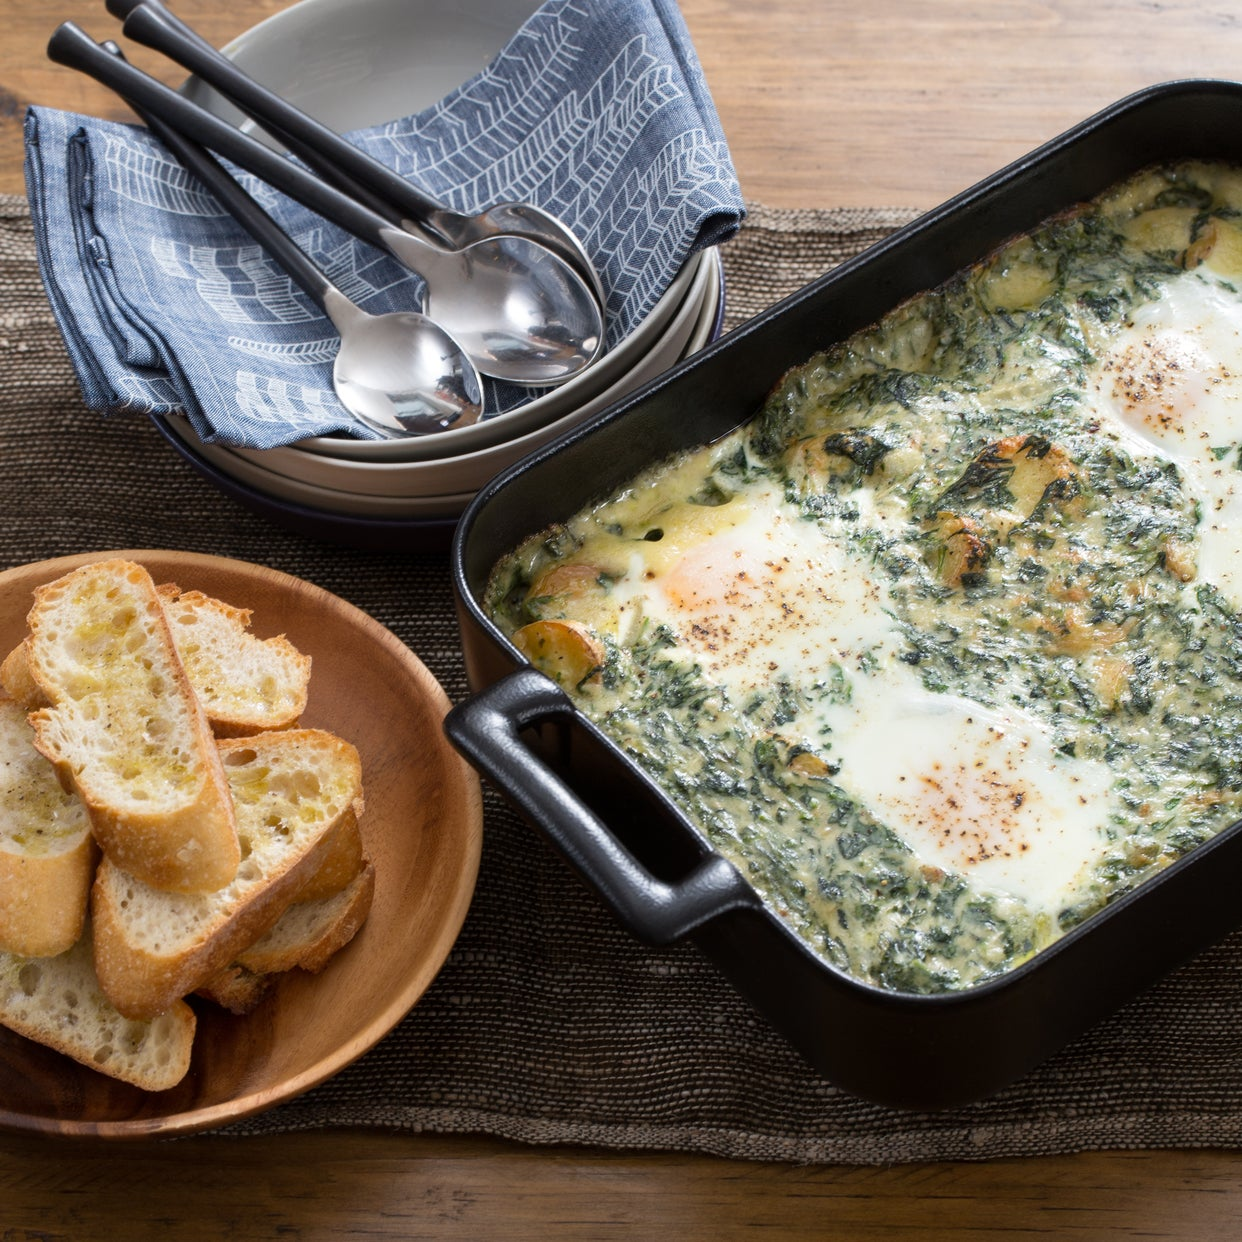 Creamy Fontina & Spinach Baked Eggs with Fingerling Potatoes & Garlic Bread